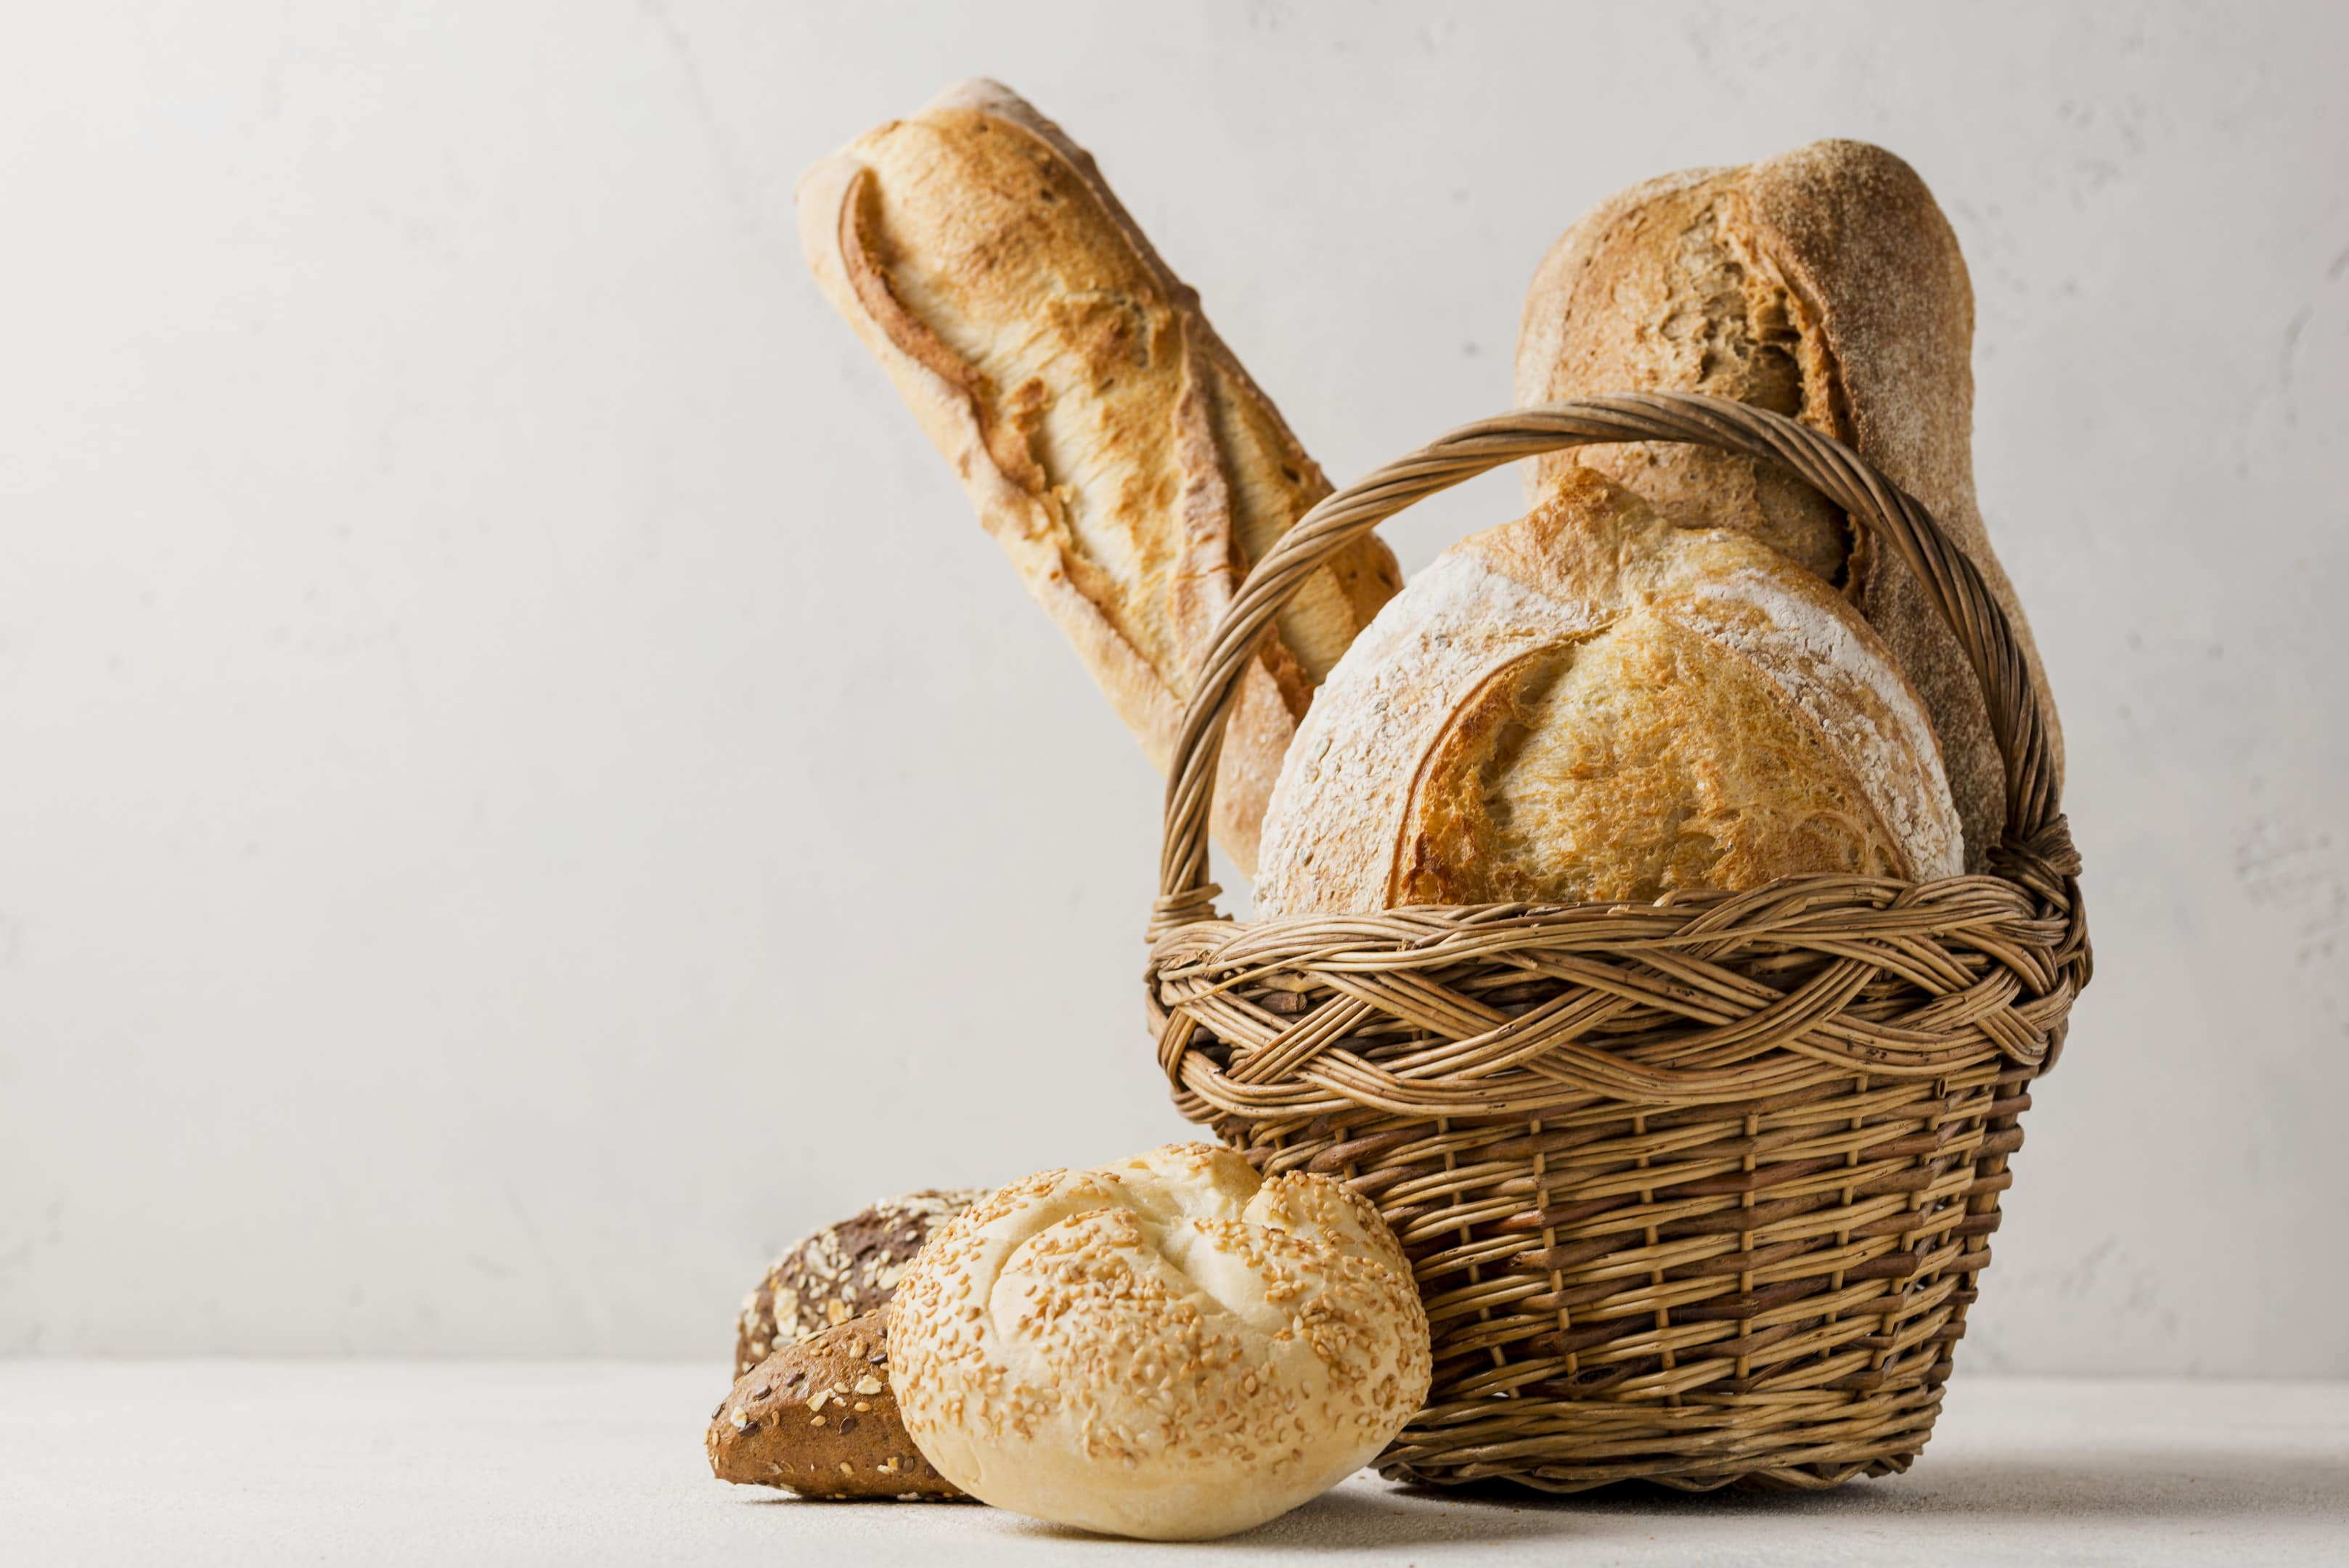 Basket with various white and whole grain breads